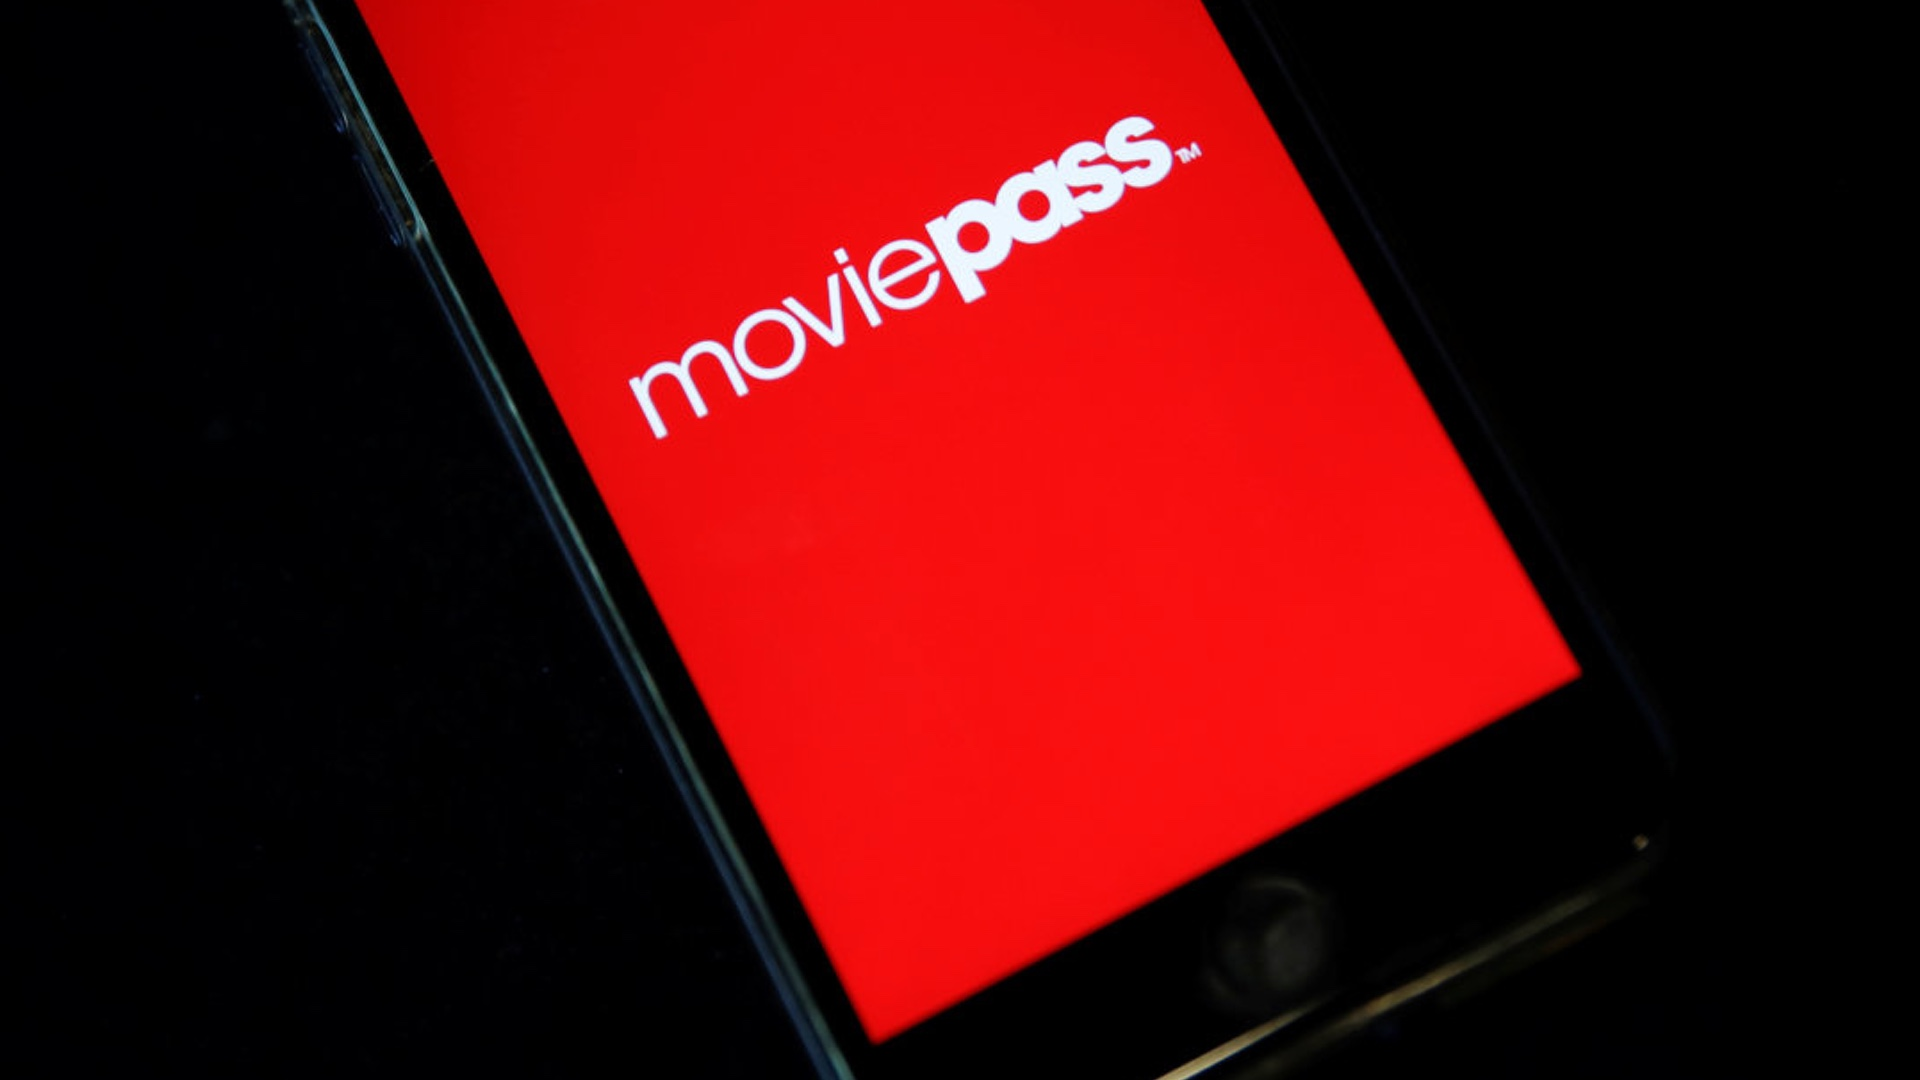 moviepass-revamps-their-plan-again-to-3-movies-a-months-to-keep-costs-at-995-a-month-social.jpg